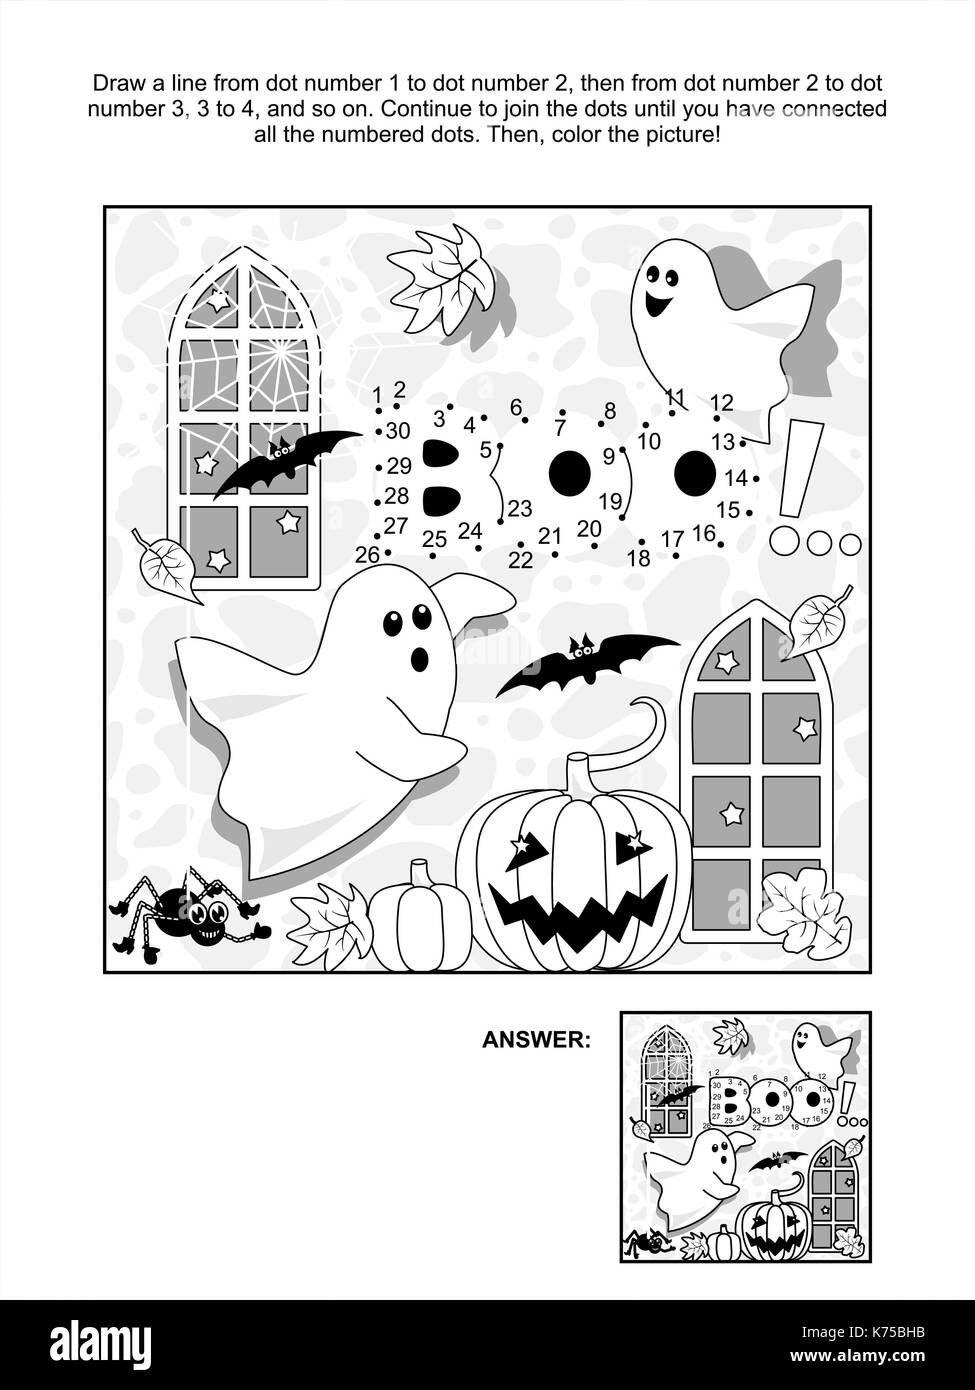 Halloween Themed Connect The Dots Picture Puzzle And Coloring Page